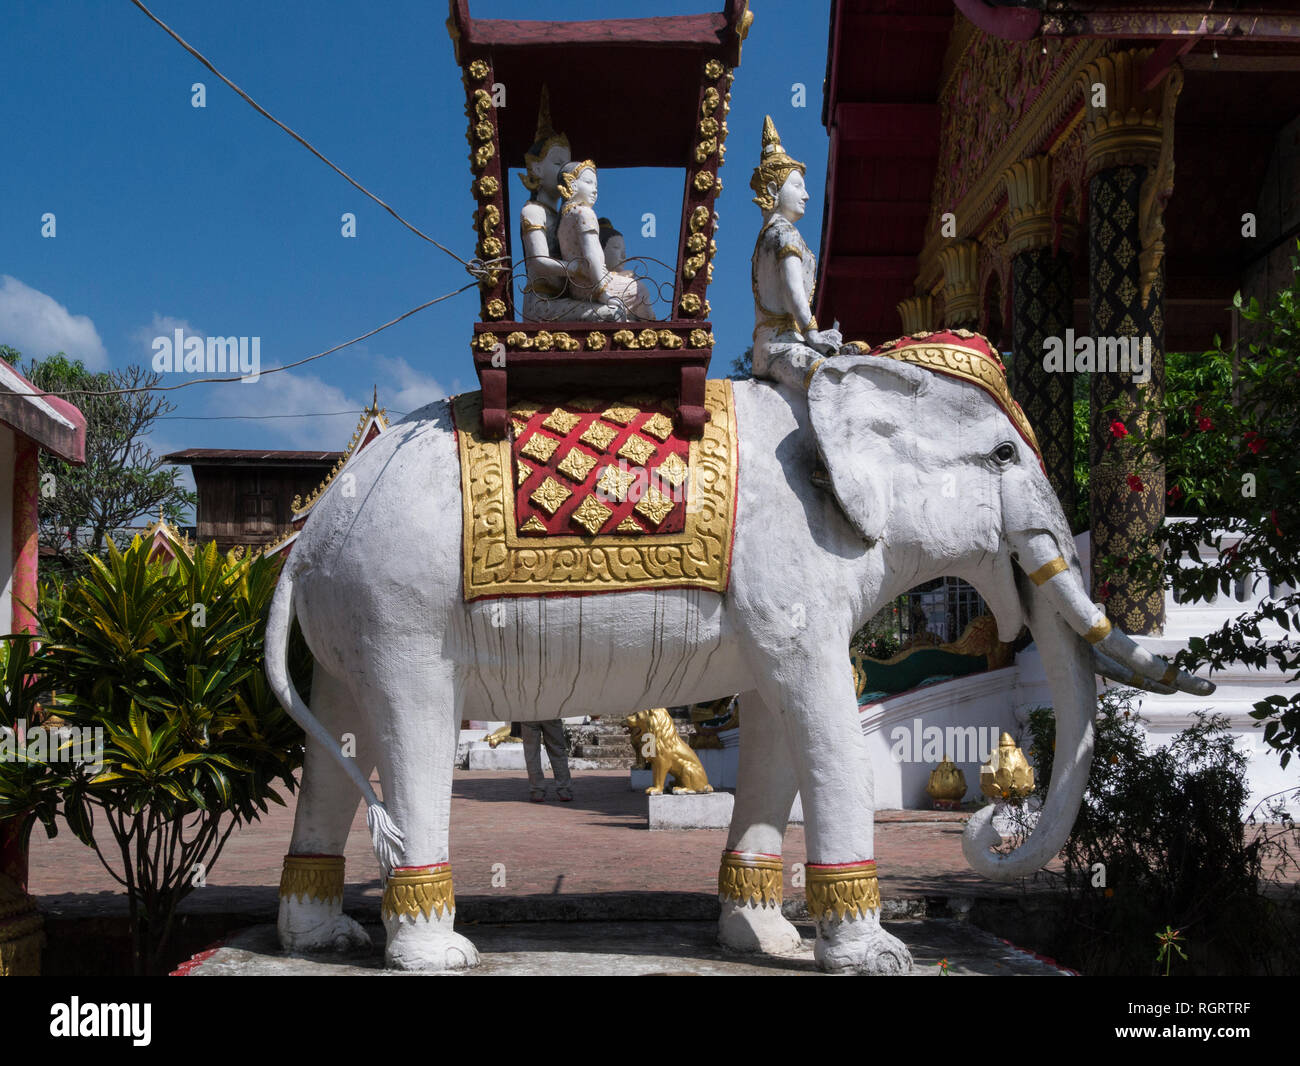 Elephant sculpture in Whiskey village Ban Xang Hai Laos Asia renowned for producing lao Lao rice whiskey - Stock Image